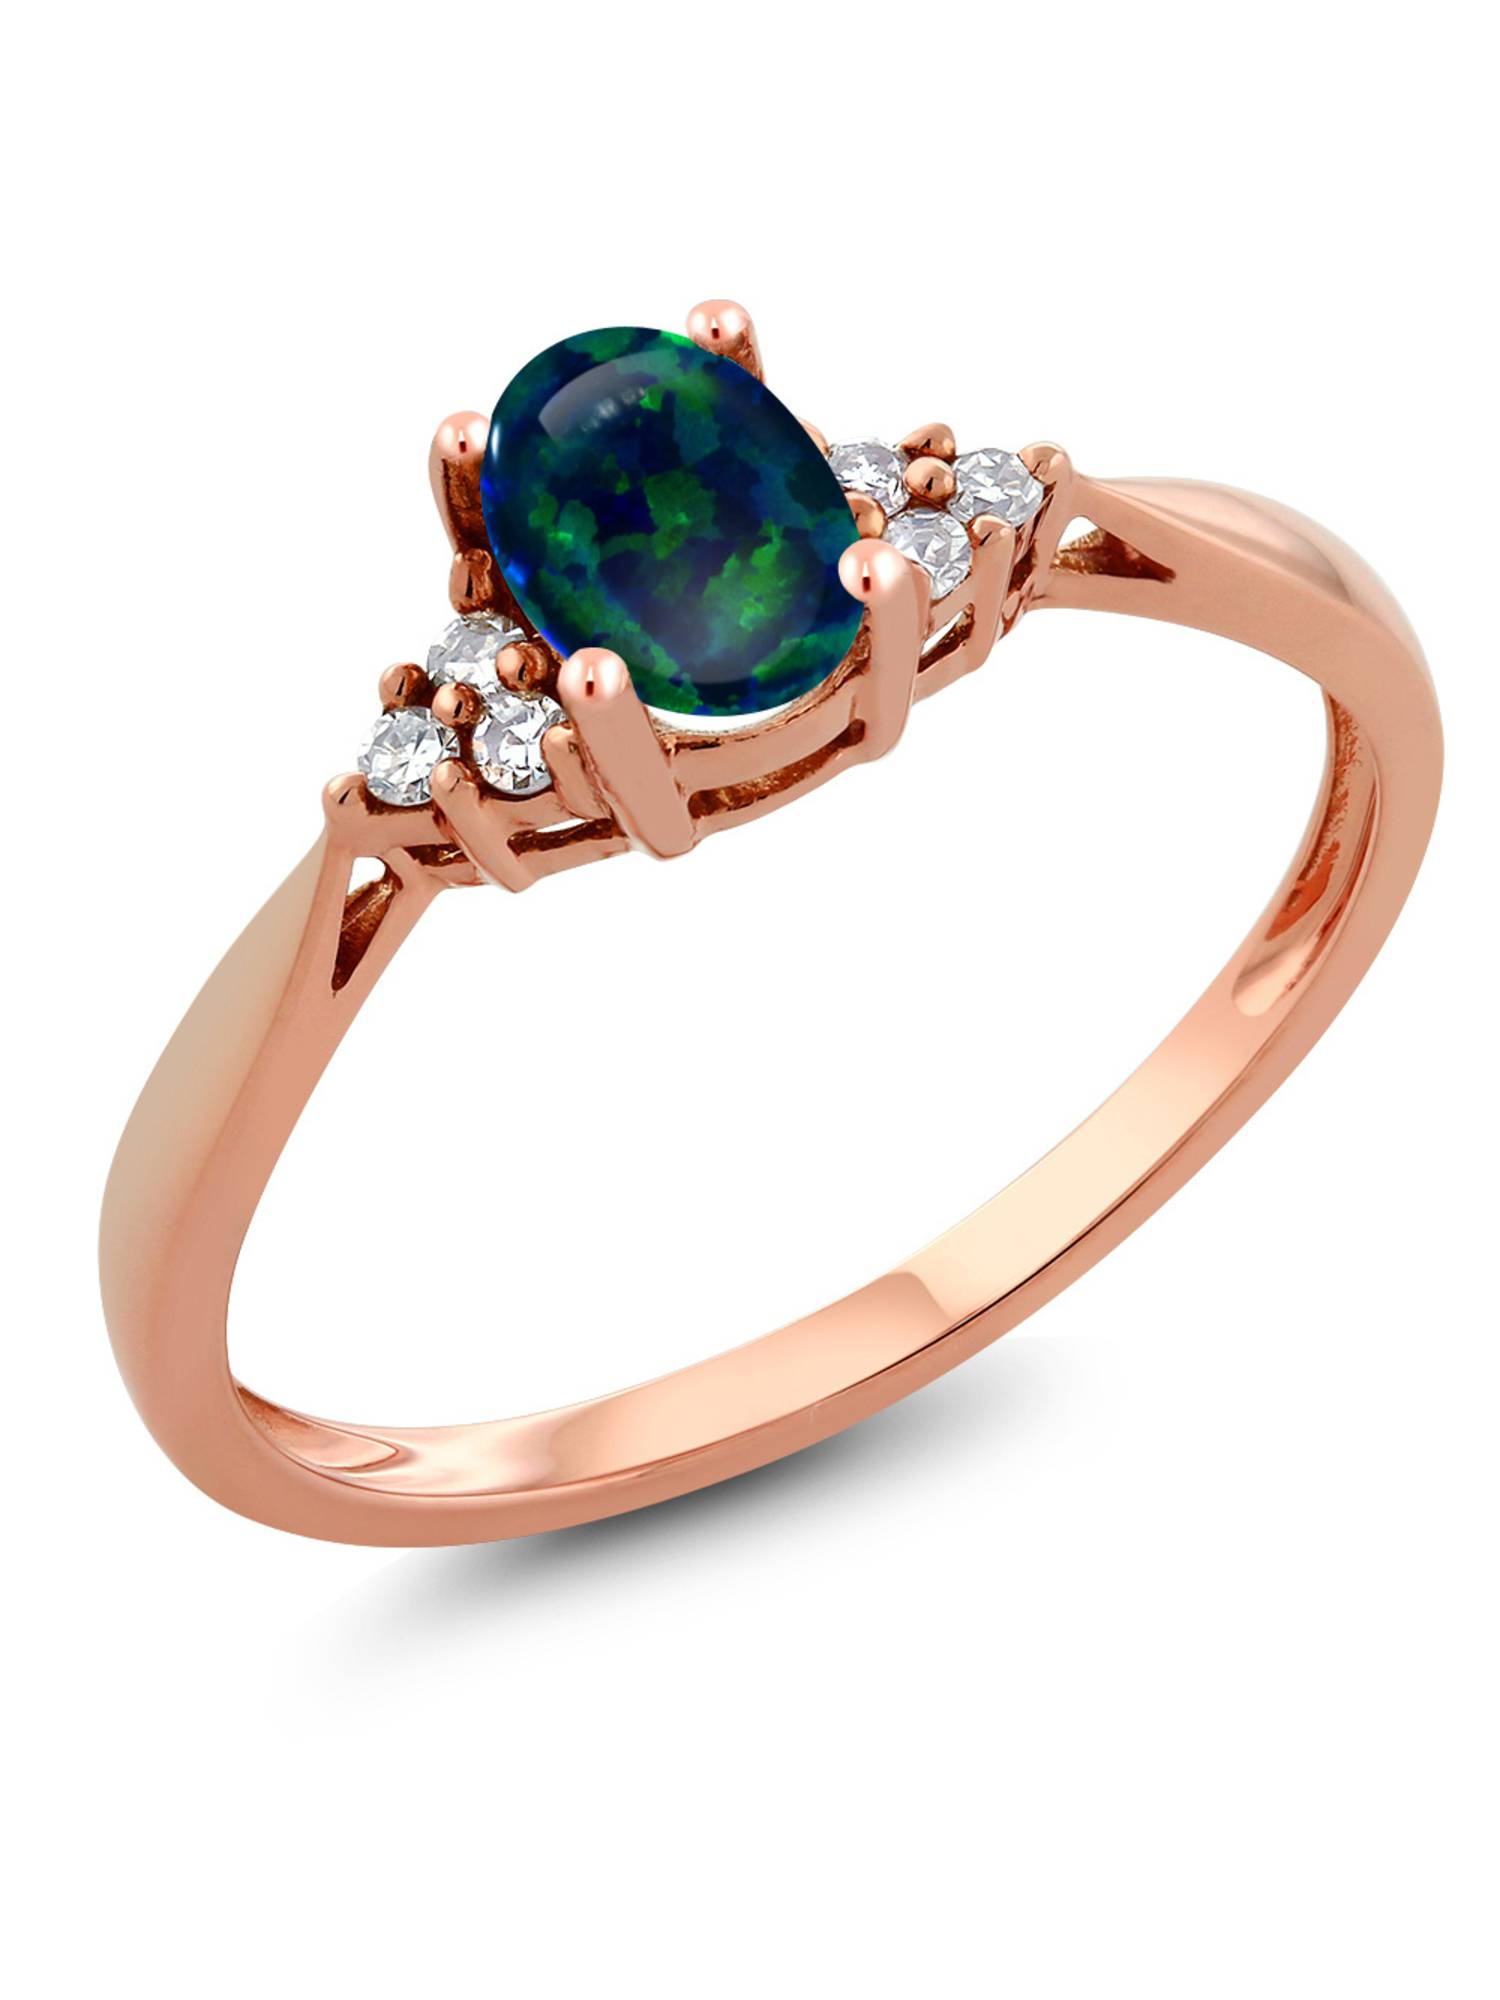 0.50 Ct Oval Cabochon Green Simulated Opal and Diamond 14K Rose Gold Ring by